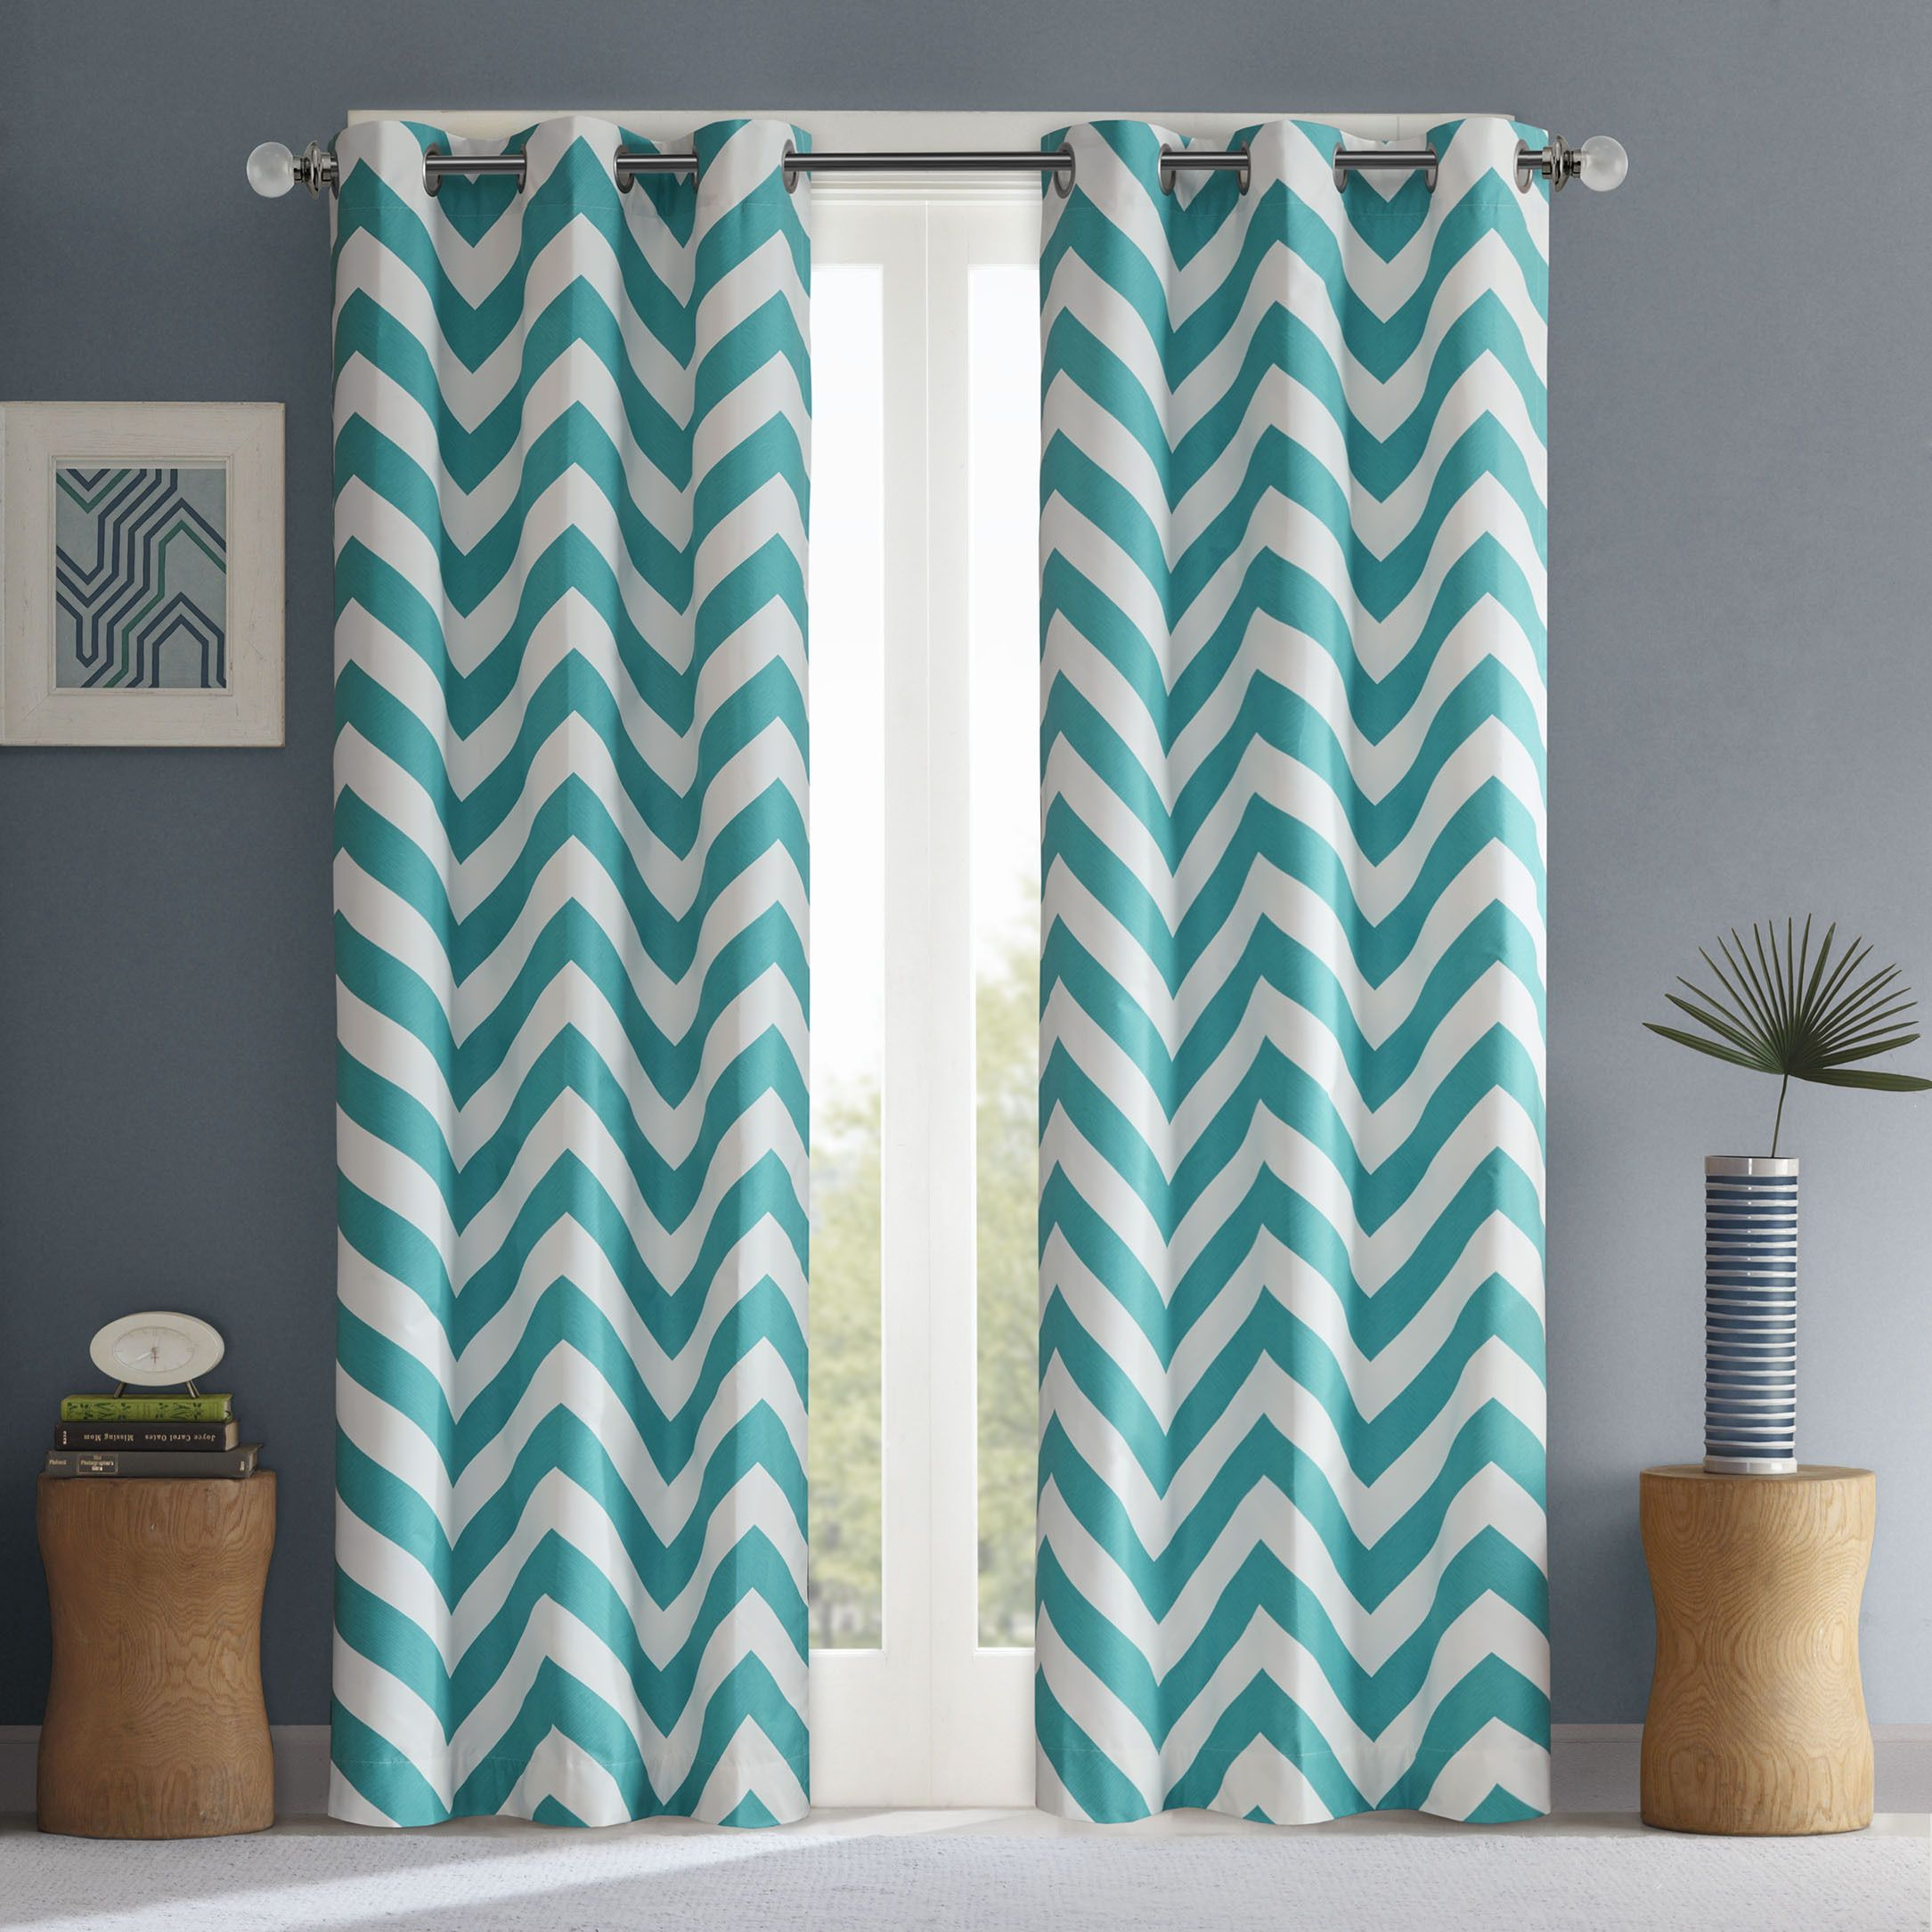 teal bedroom curtains. Curtains  Drapes For Less Teal Bedroom Intelligent Design Pisces Curtain Panel Pair Window panels Bald